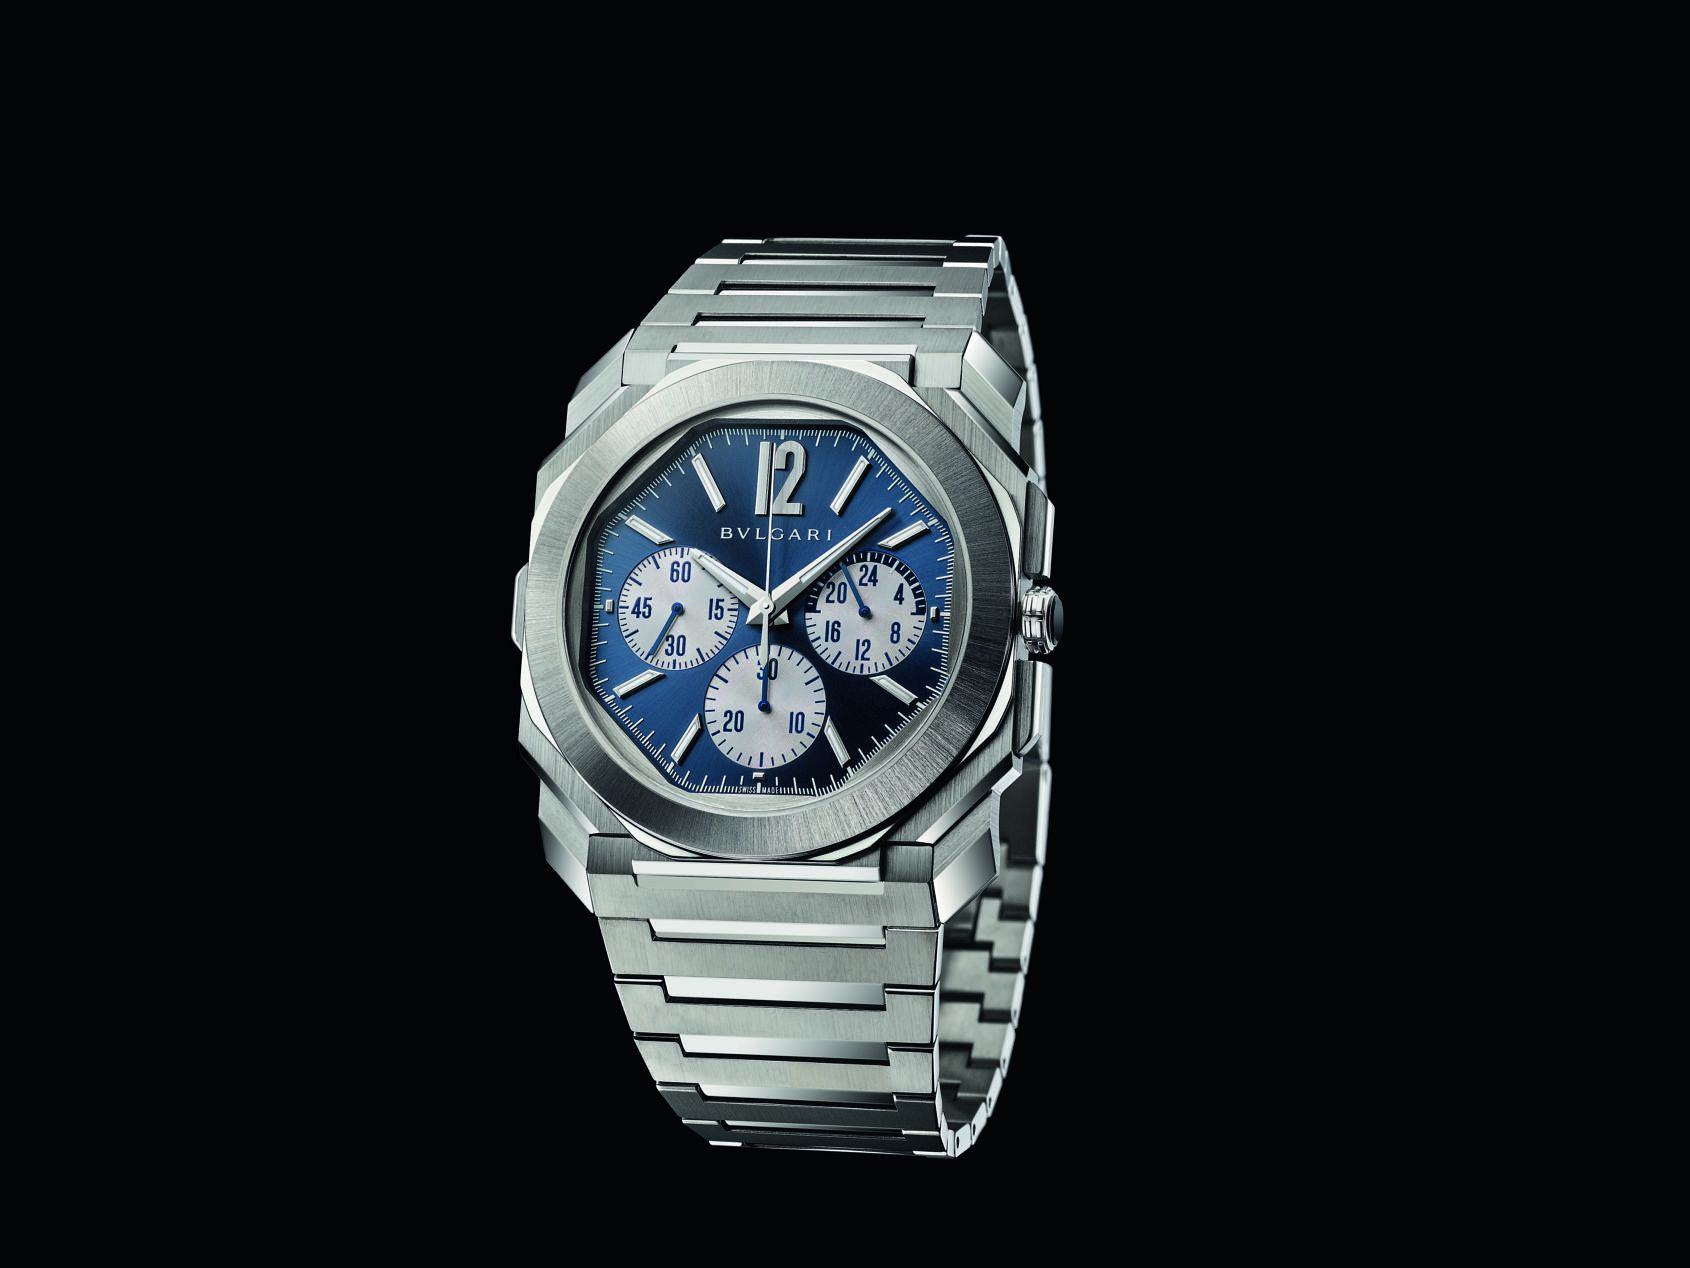 INTRODUCING: The Bulgari Octo Finissimo S Chronograph GMT is sportier and tougher with a panda dial